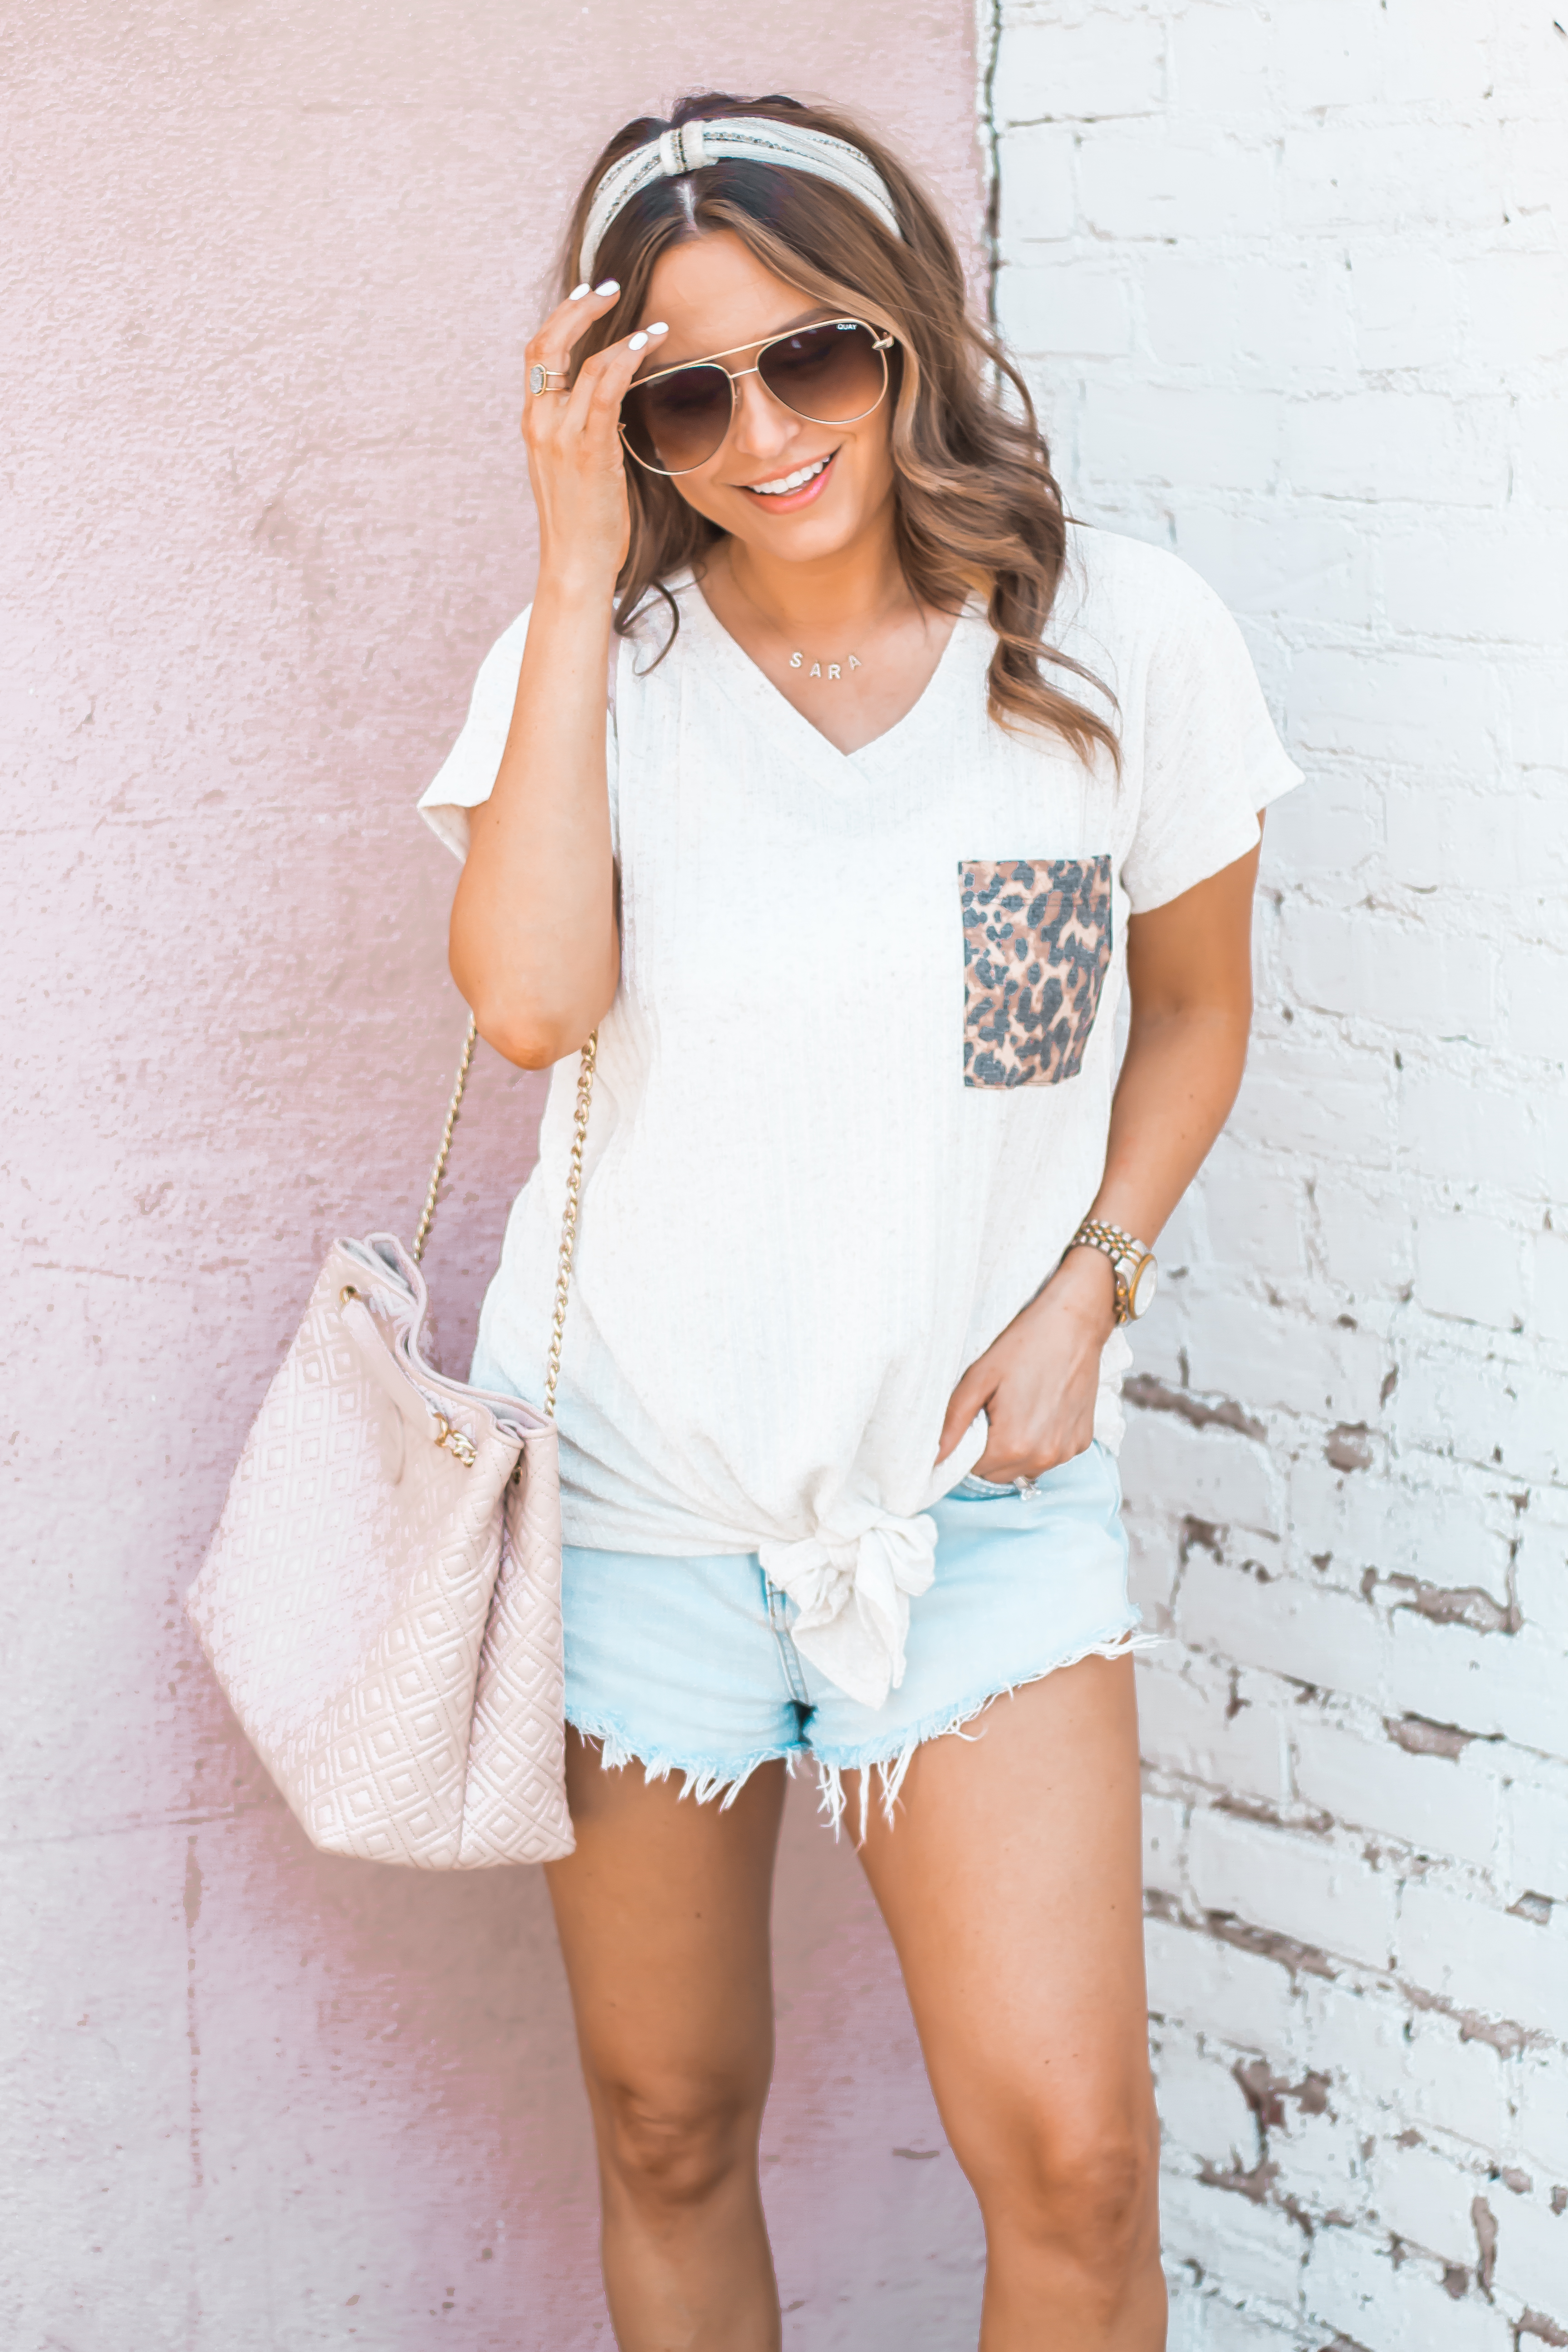 Women's Fashion-Summer Fashion-Summer Outfit Inspiration-Sabby Style-Omaha Blogger-Leopard Pocket Top-The Style Bar Boutique-Cutoff Shorts-Espadrille Wedges-Marc Fisher Wedges-Tory Burch Fleming-Quay Sunglasses-Headband Trend-Omaha-Nebraska-Midwest Blogger-7